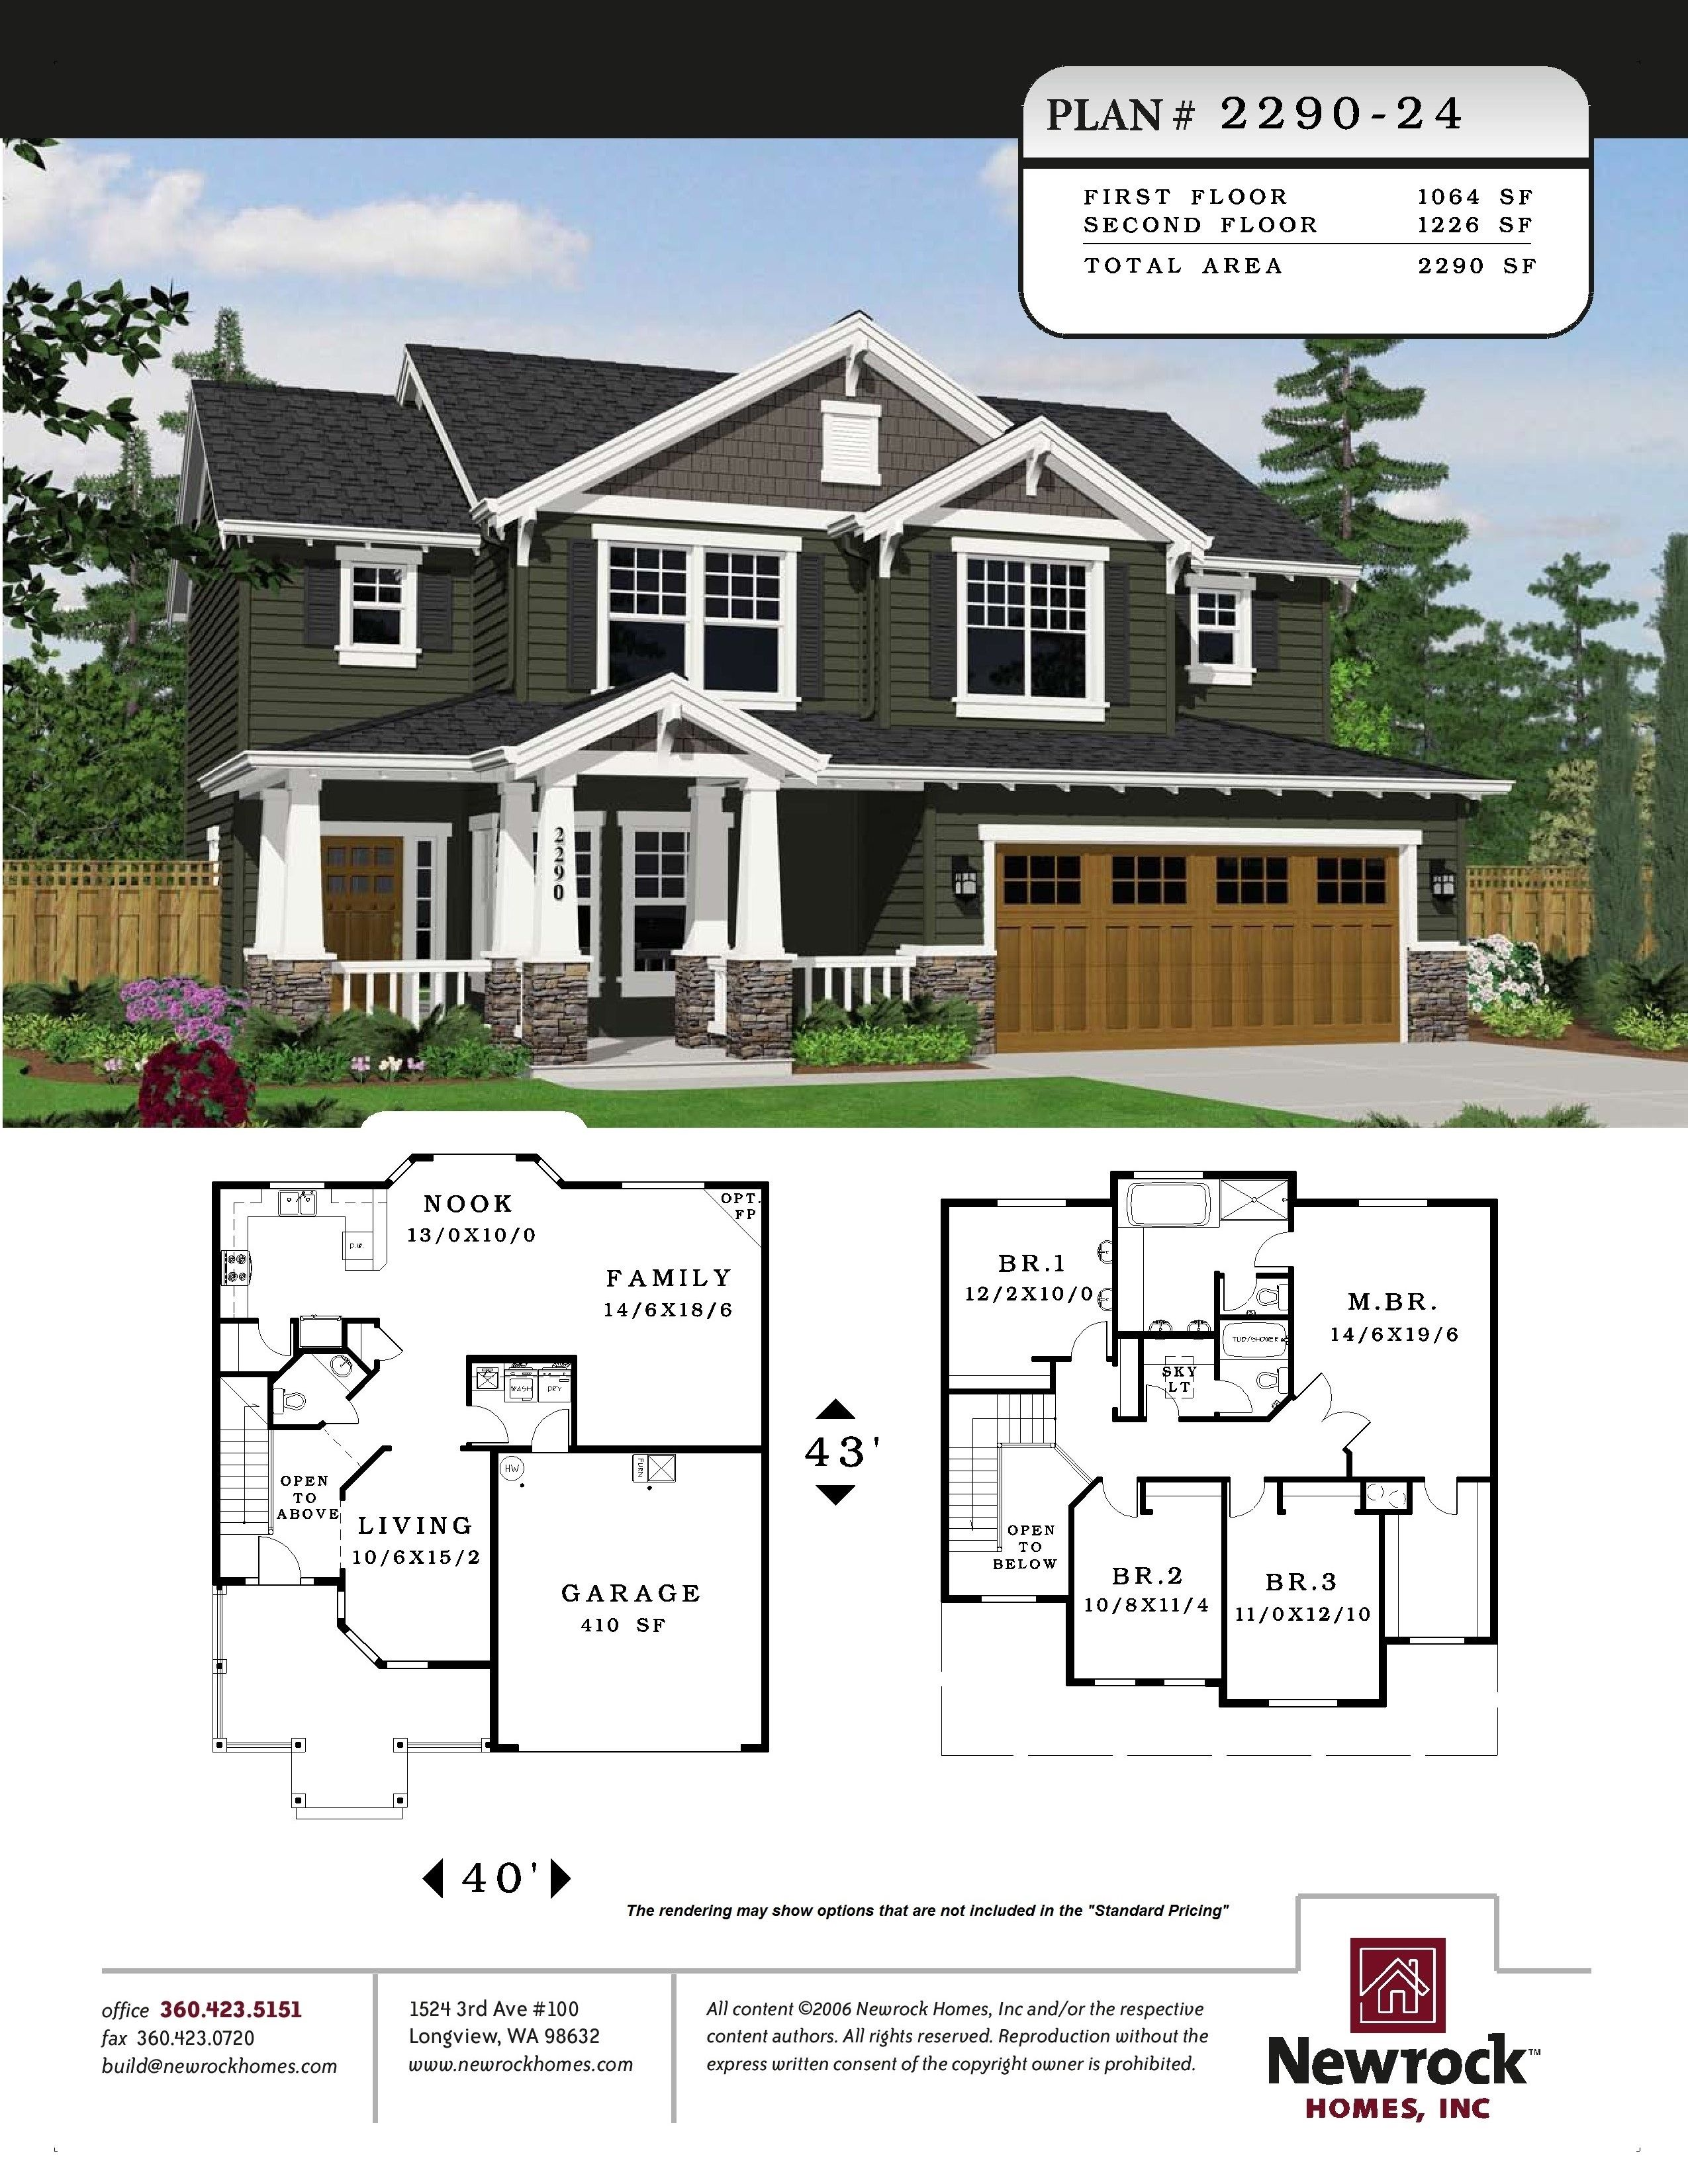 Plan 2290 24 newrock homes dream home pinterest house plan 2290 24 newrock homes solutioingenieria Choice Image